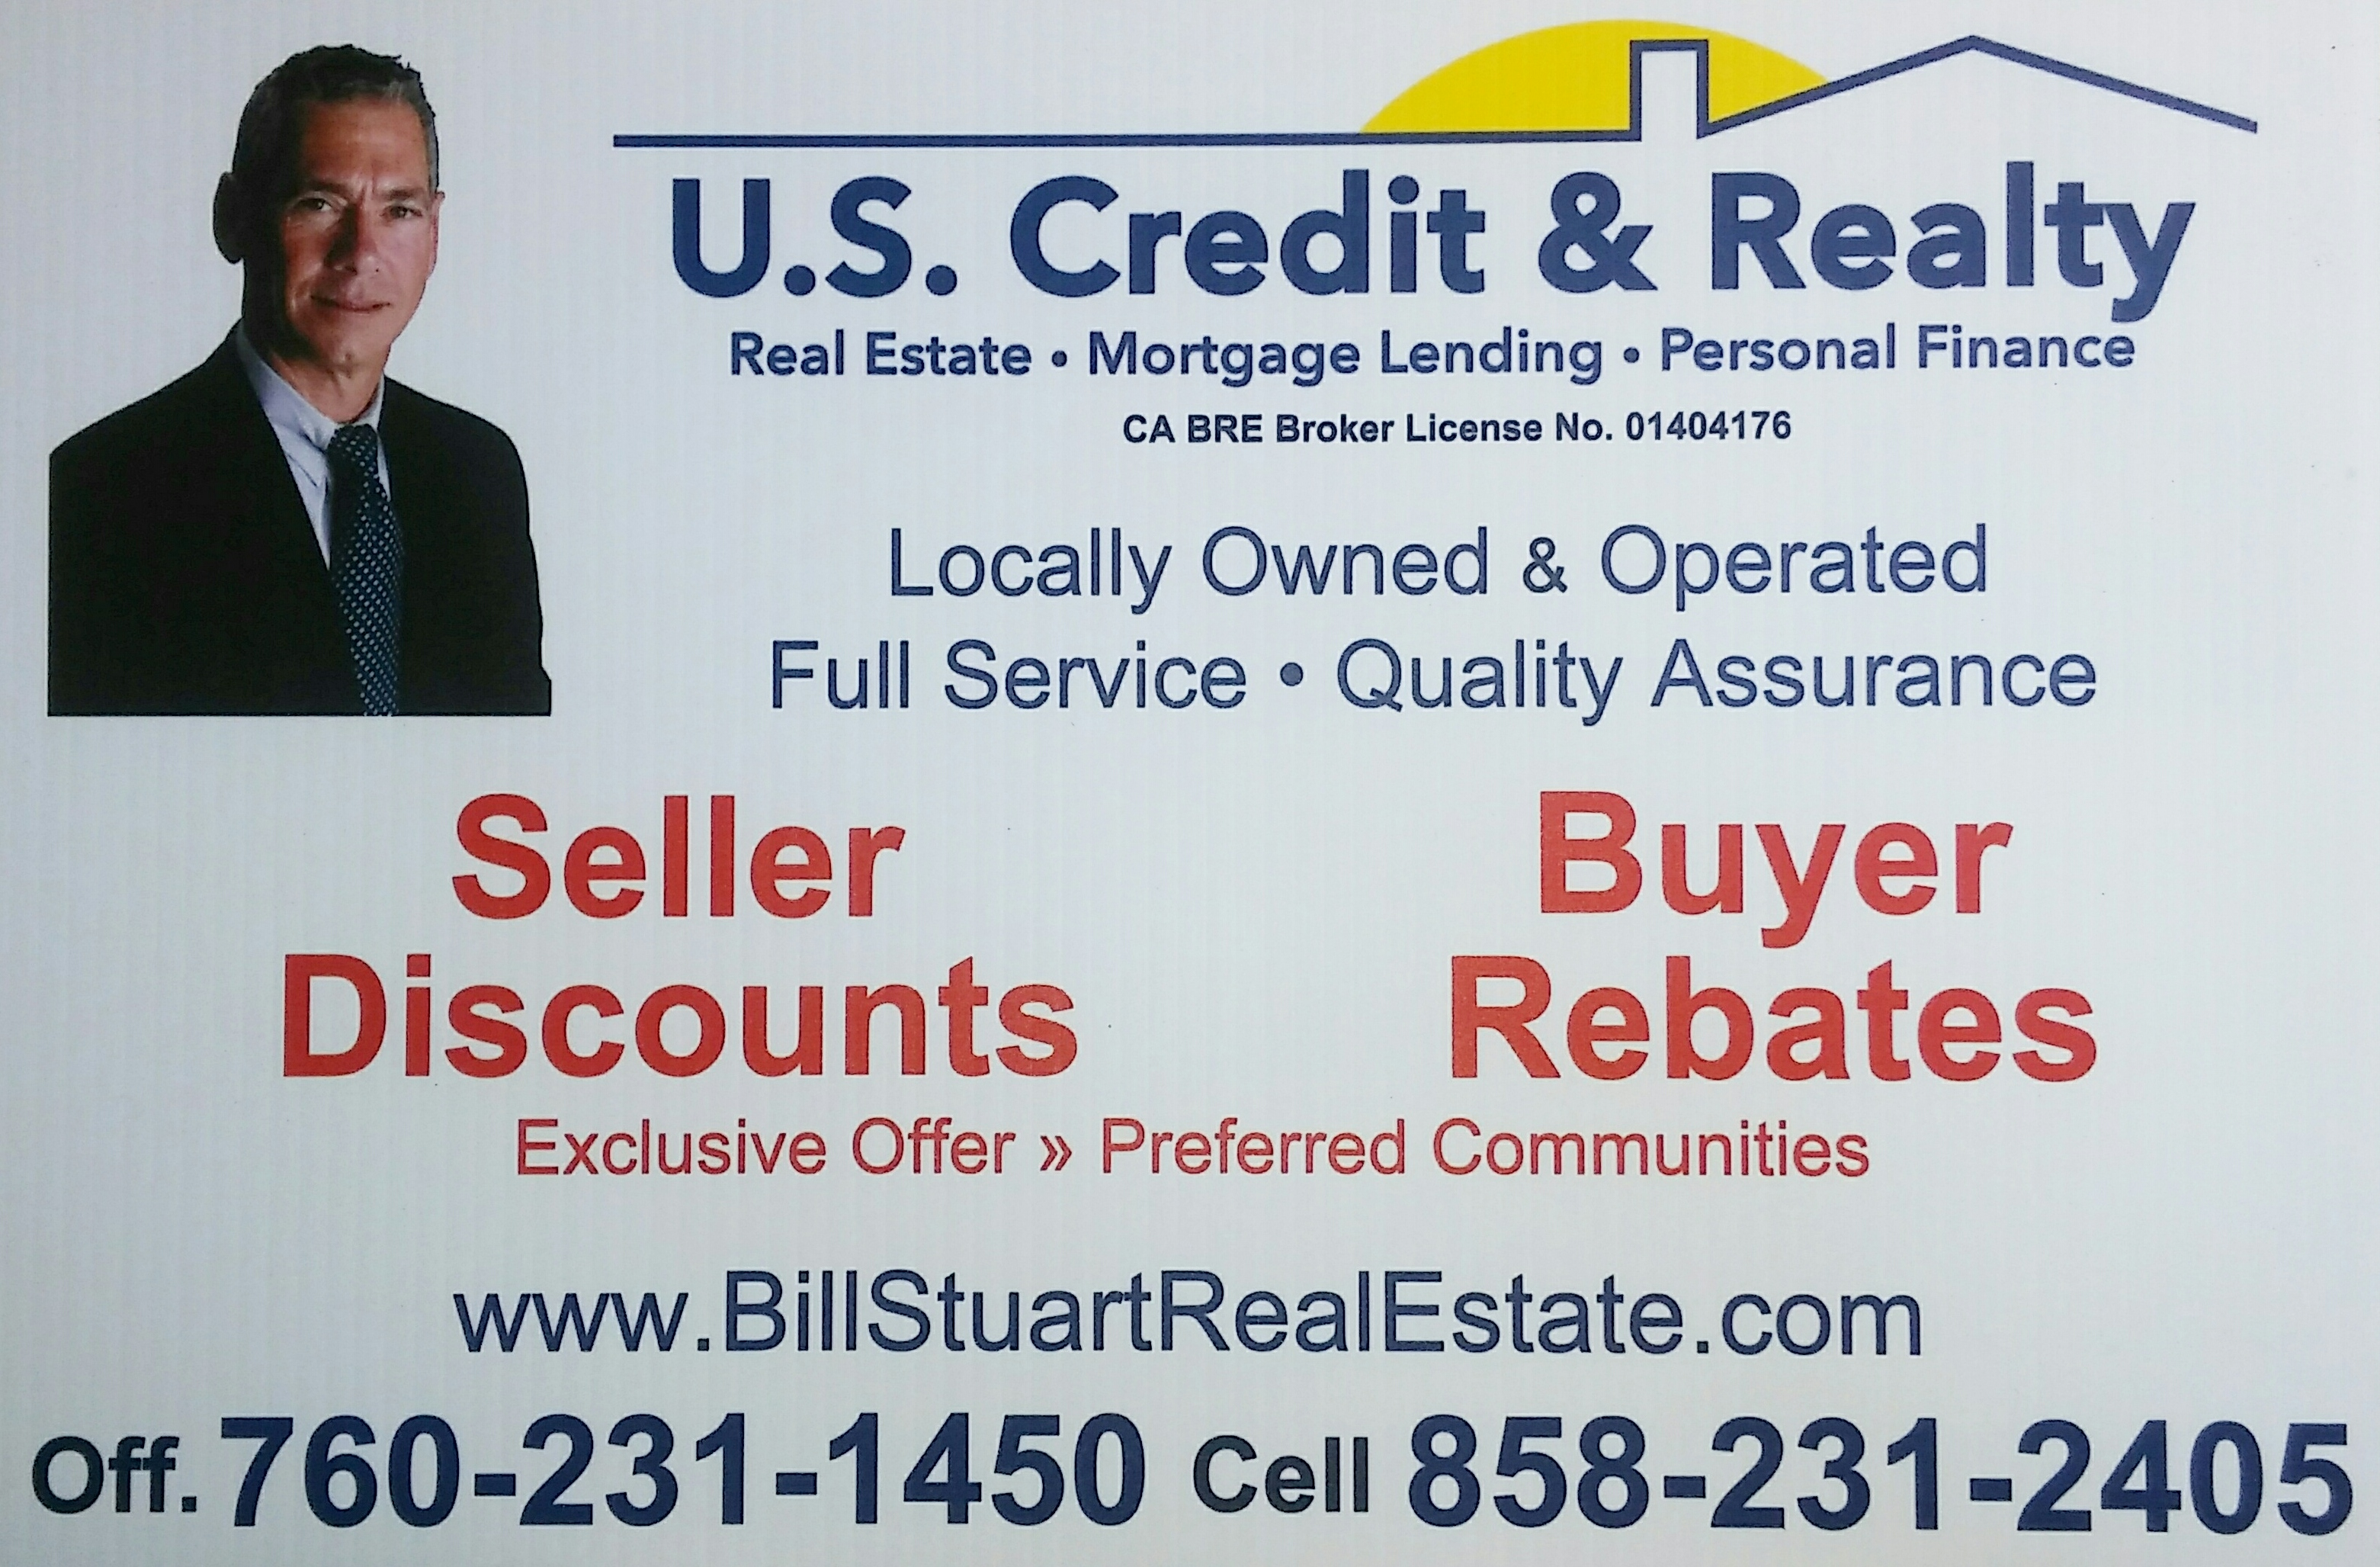 U S  Credit & Realty, Your Real Estate Company for San Diego